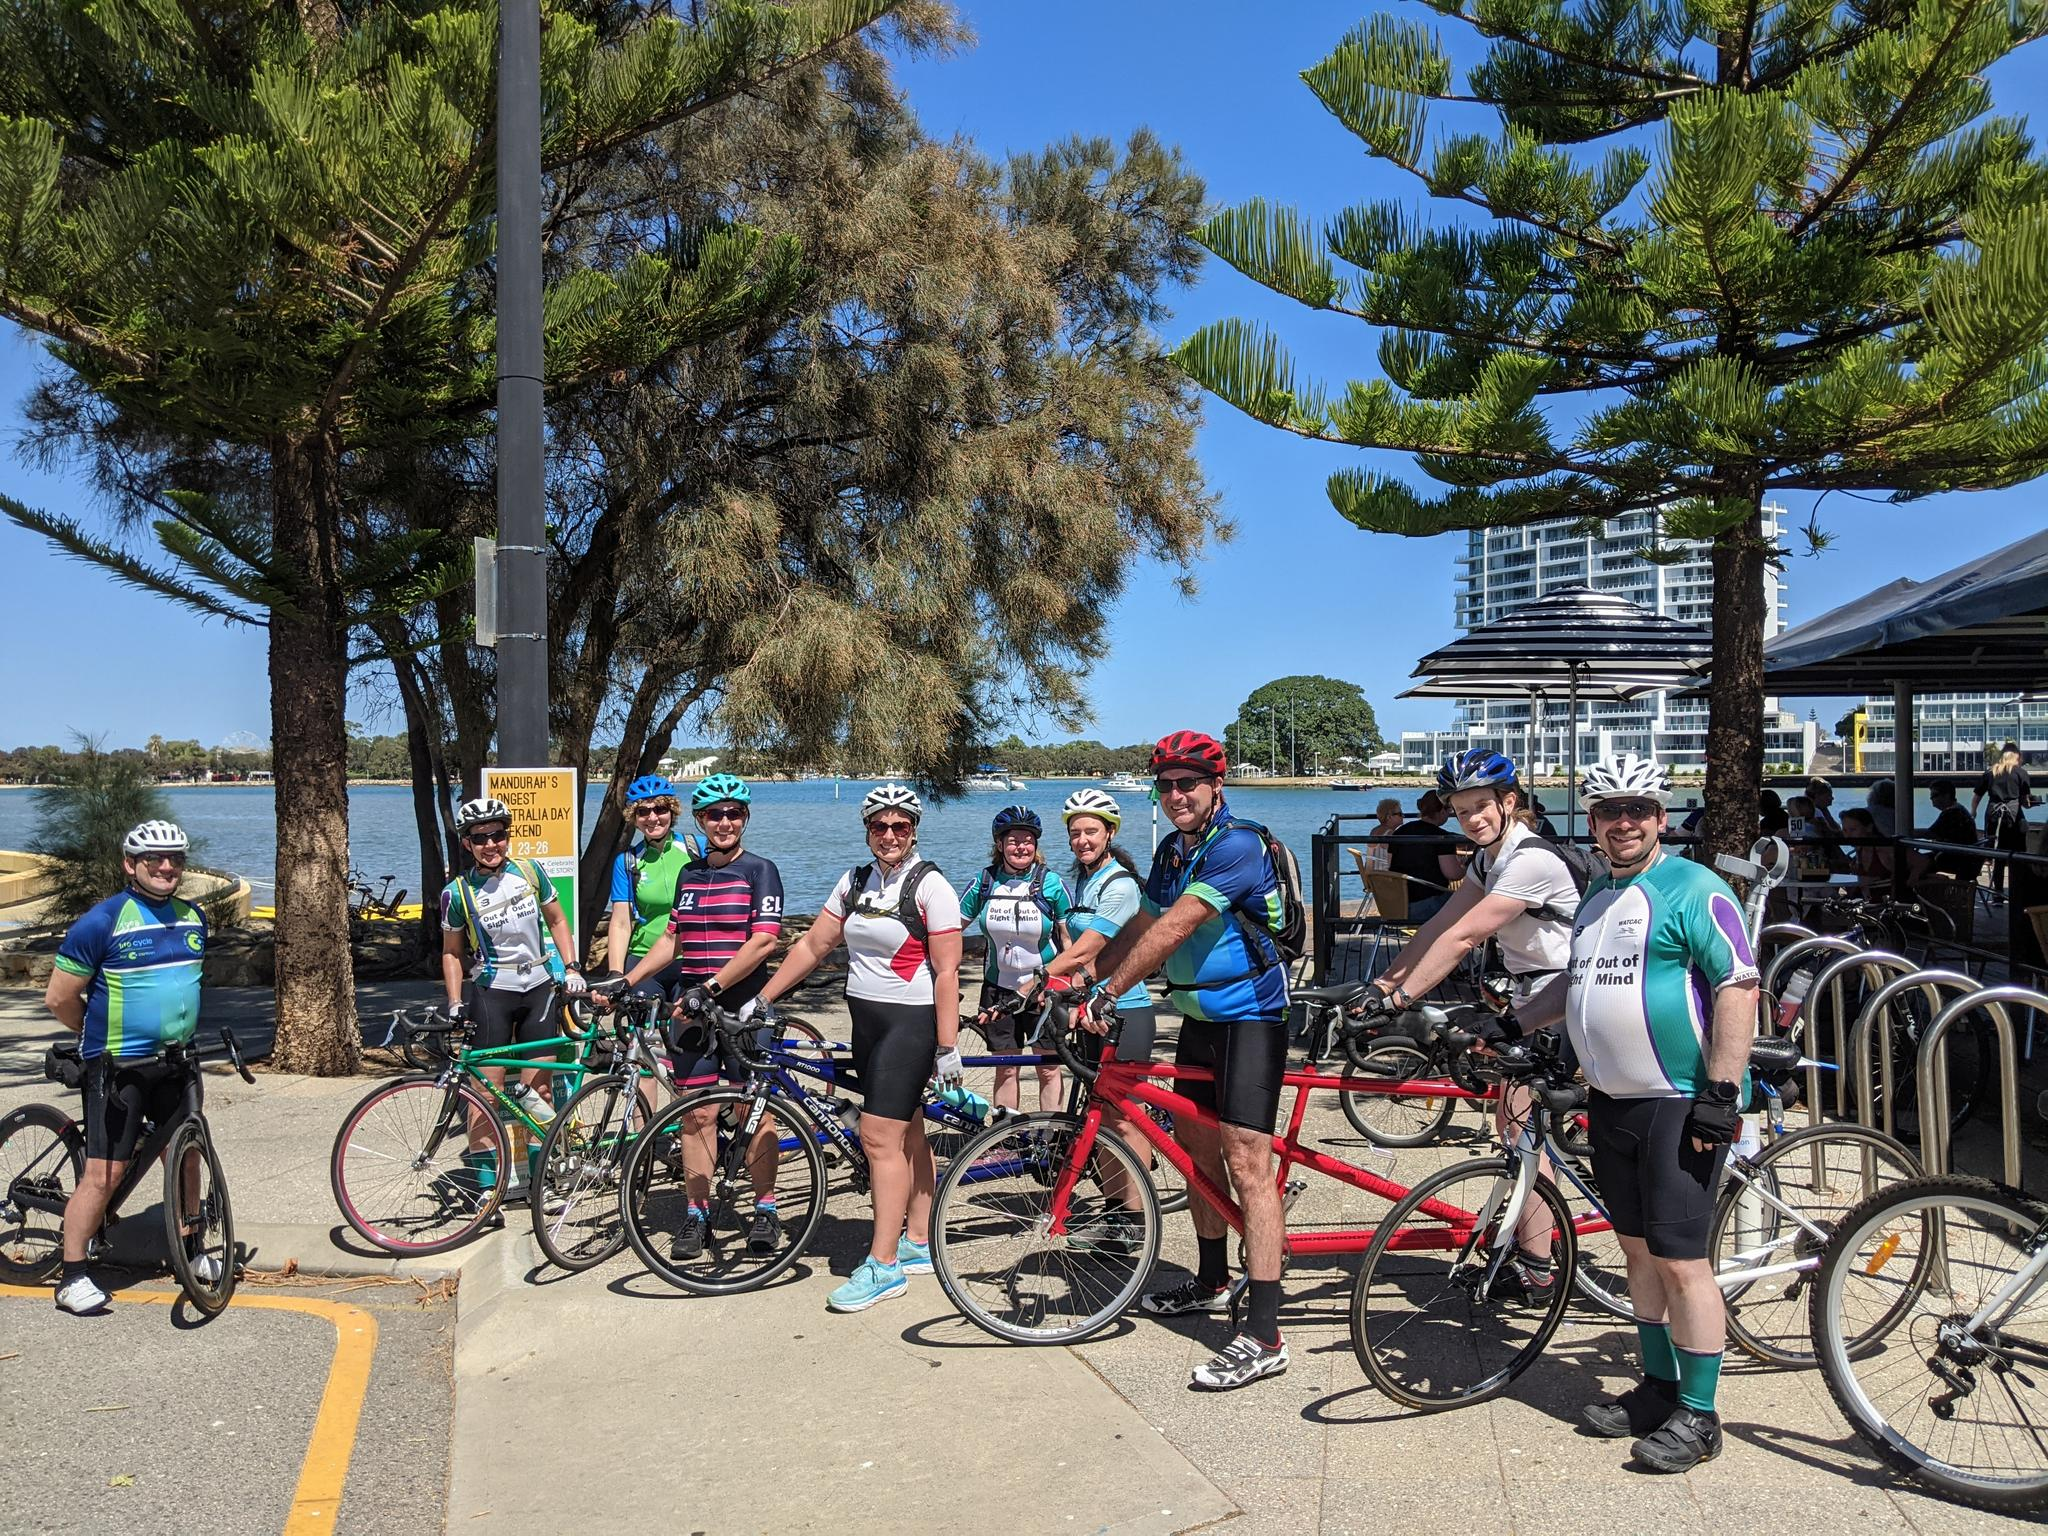 A group of 10 riders comprised of four tandems and two single bikes mount up outside a cafe stop on the Mandurah foreshore in preparation for the ride home. Despite the warmth favourable winds enabled riders to complete 112 km.